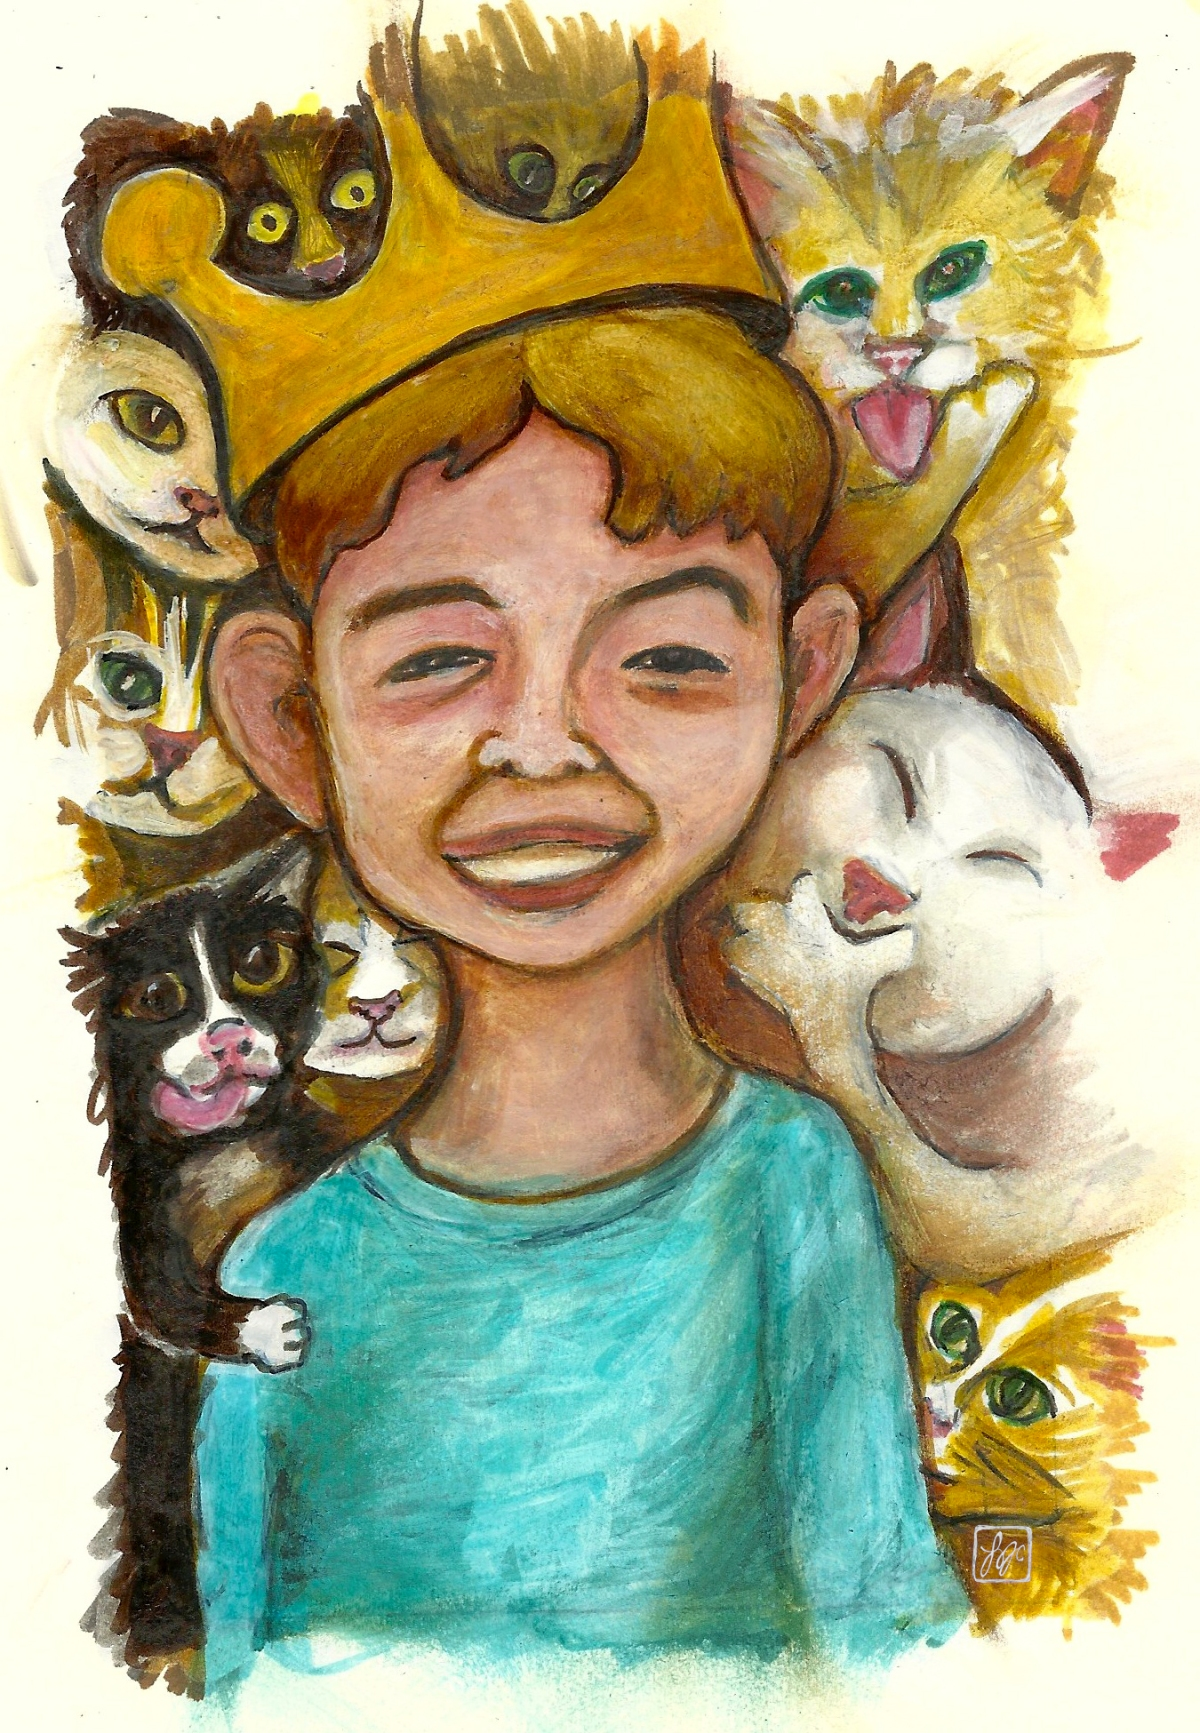 illustration of a boy wearing a crown, surrounded by cats